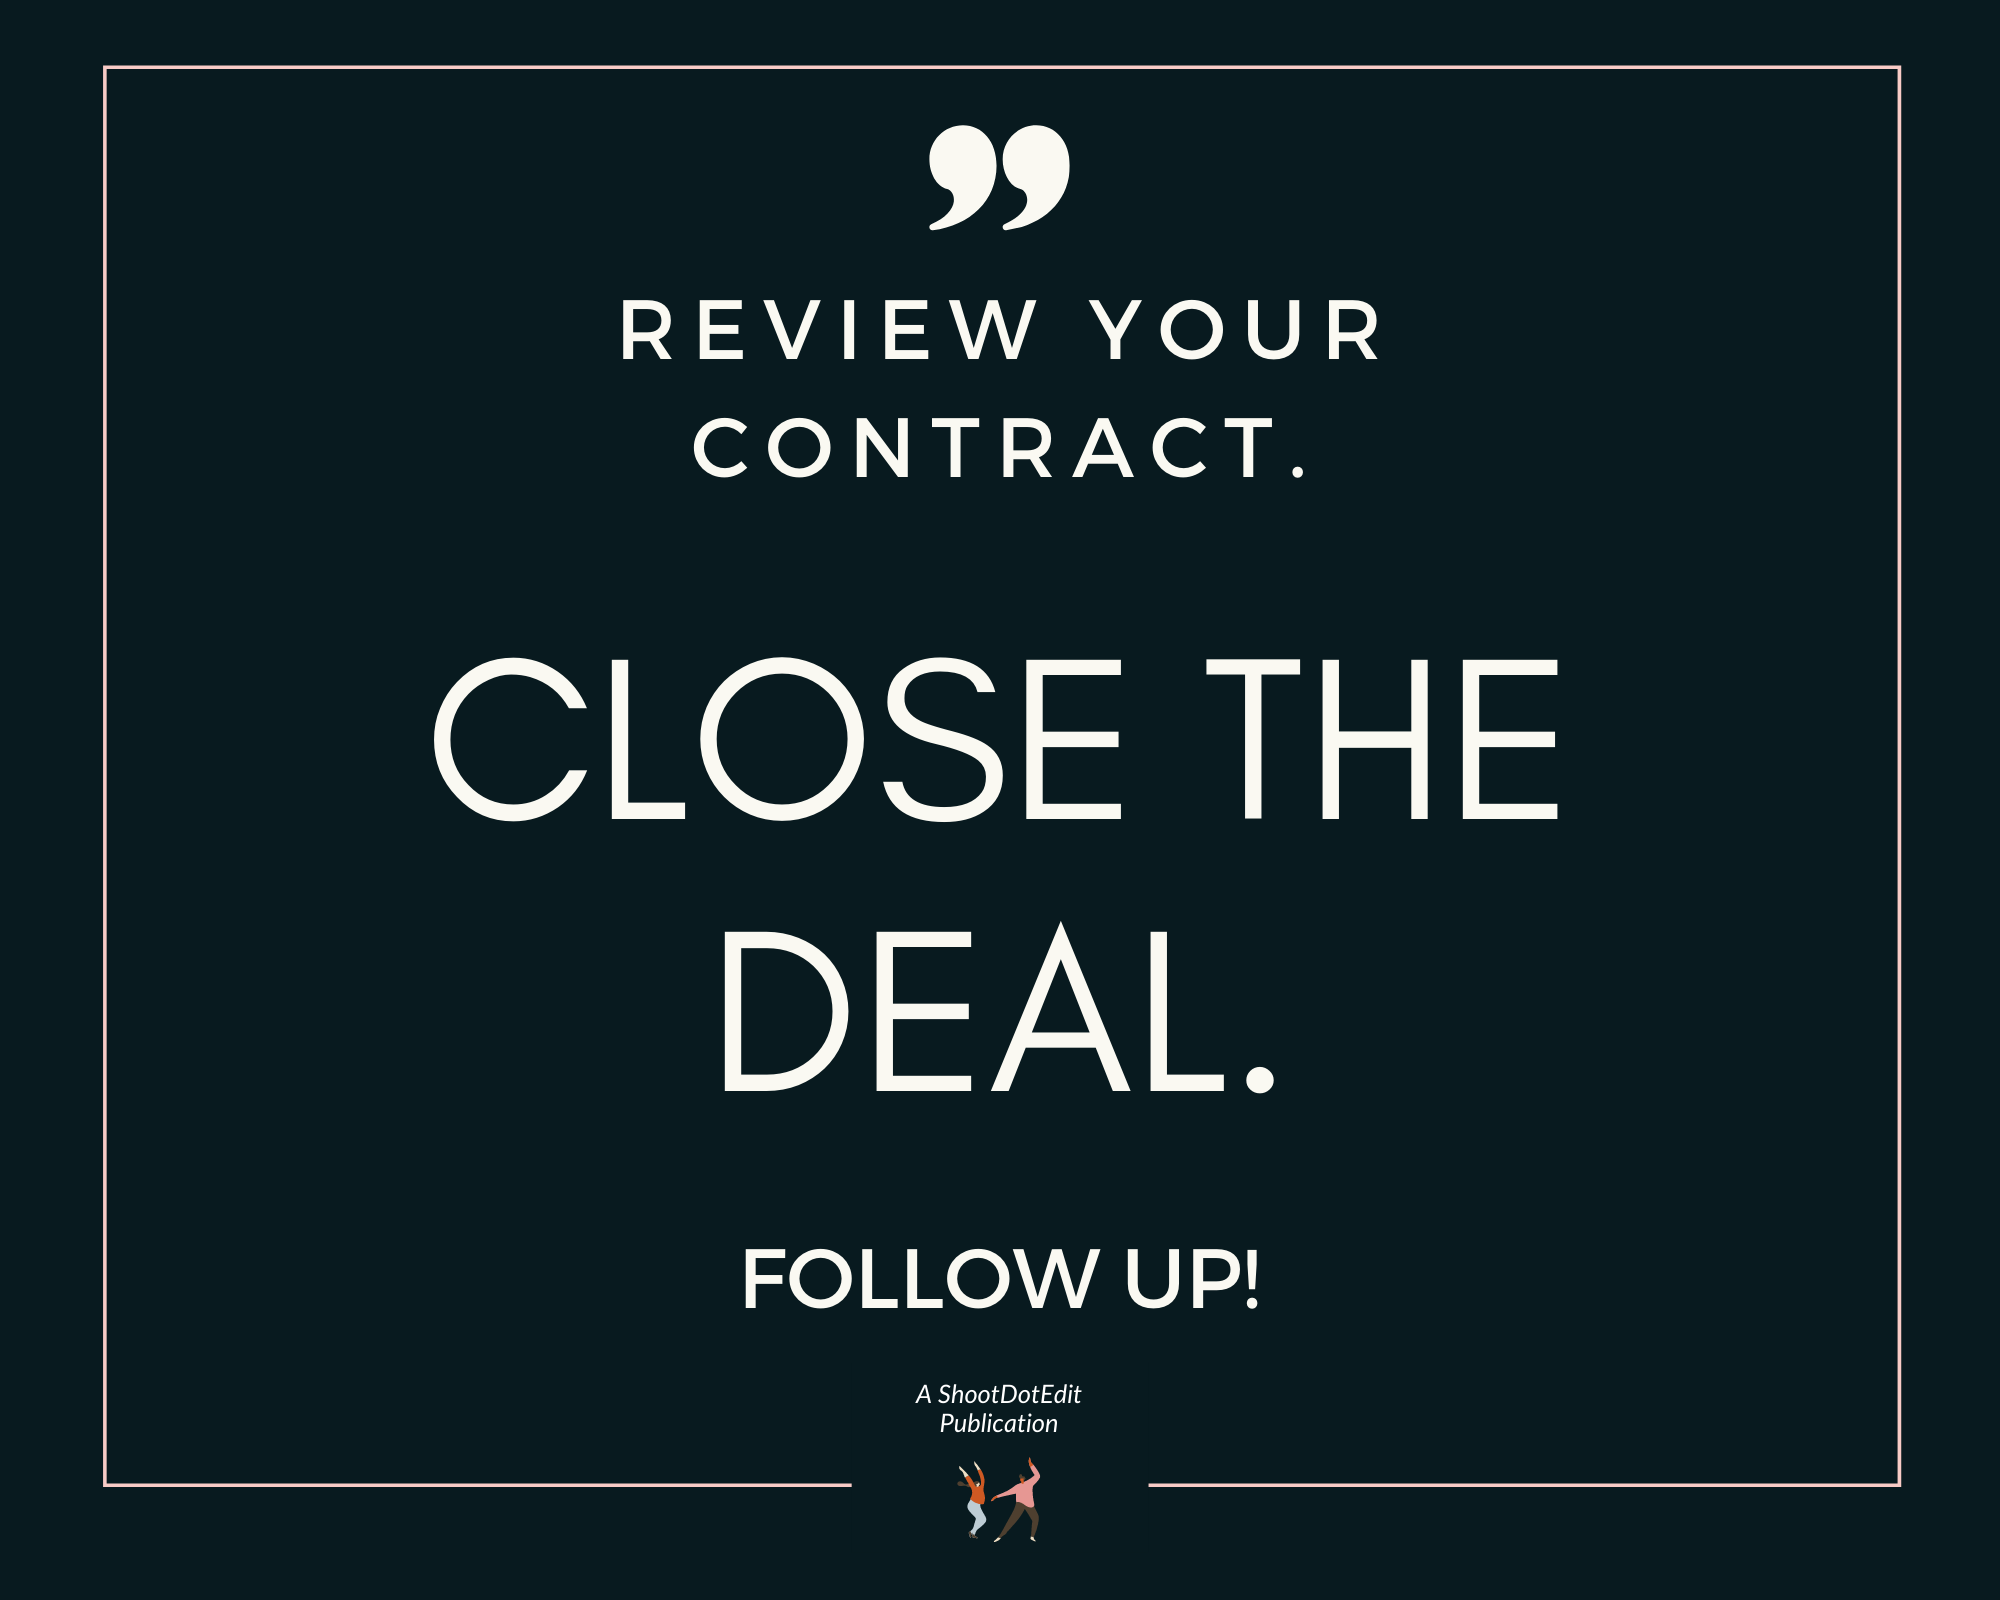 Infographic - Review your contract. Close the deal. Follow up